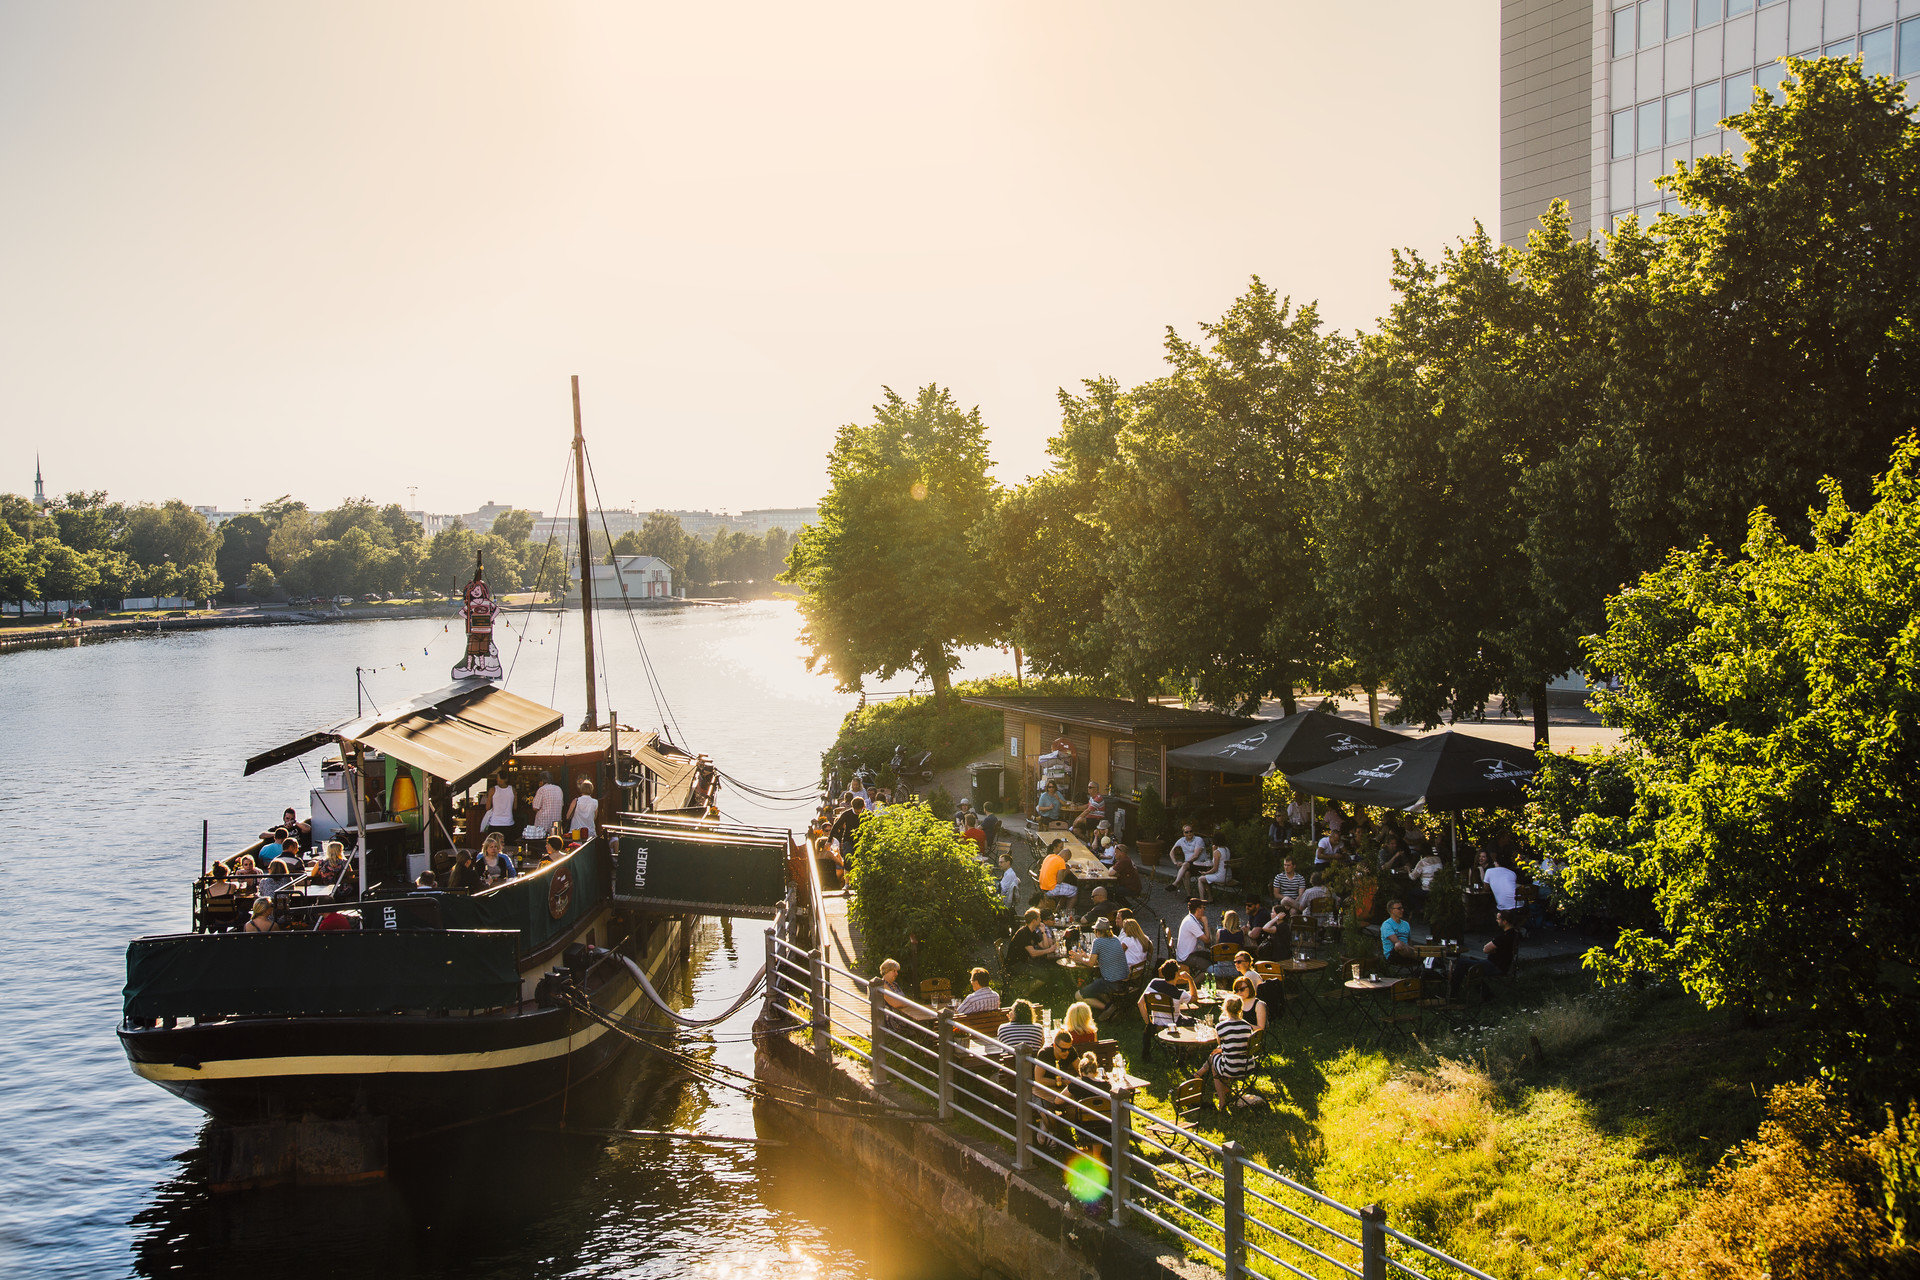 Boat Eat outdoor dining trees Trip Ideas Waterfront outdoor water tree sky reflection River body of water vehicle Canal waterway season morning evening flower autumn